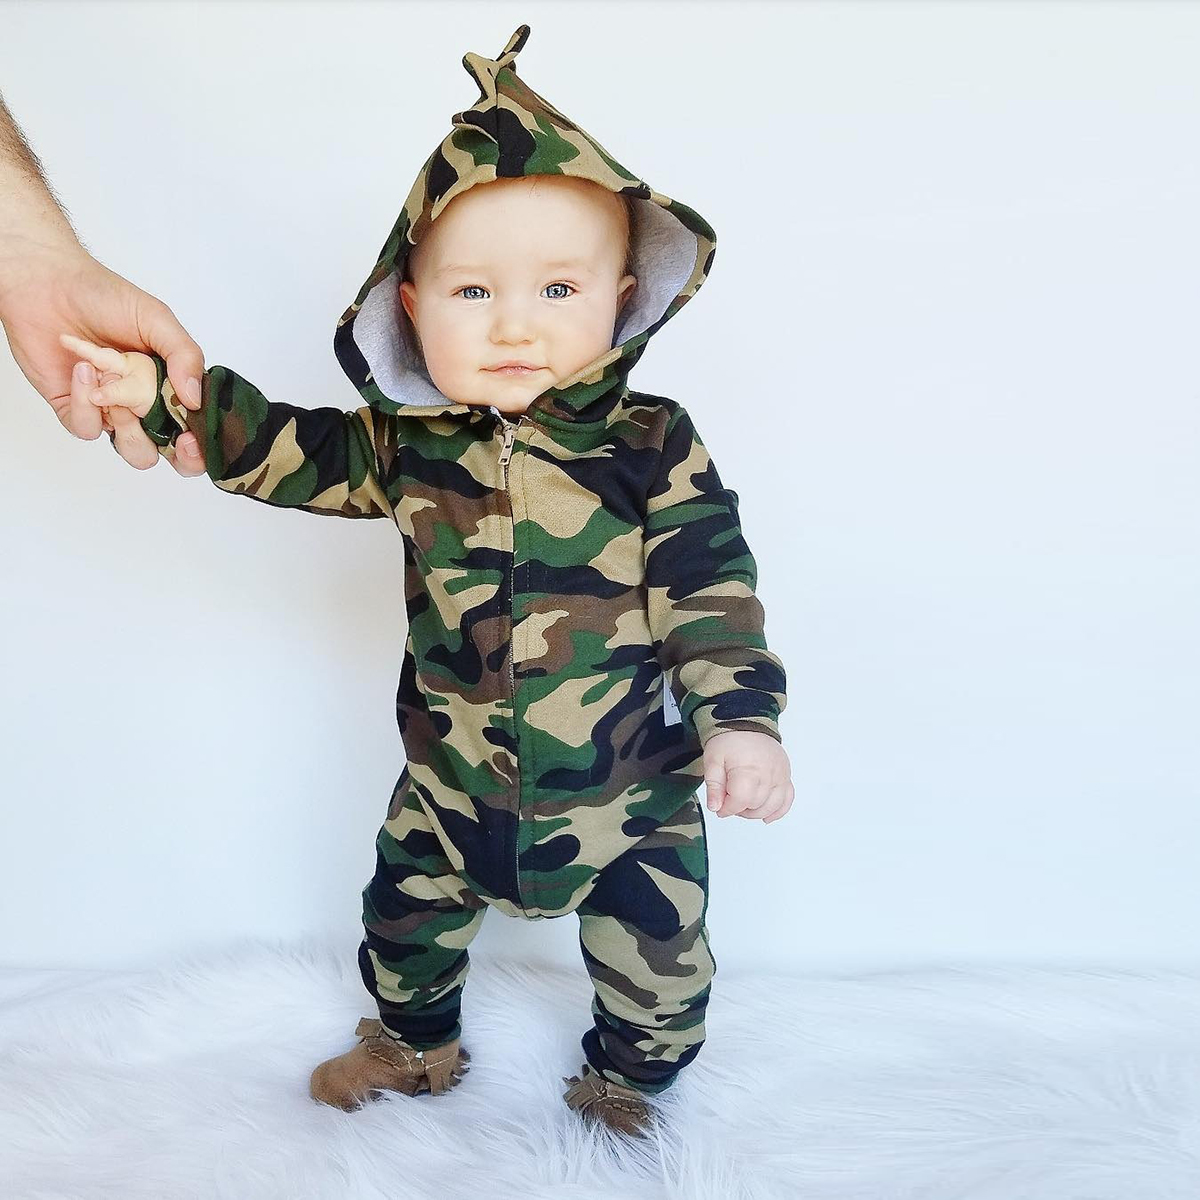 Autumn Toddler Kids Rompers Newborn Baby Boy Girl Infant Hooded Romper Jumpsuit Camo Star Playsuit Outfit Sweatshirt Clothes baby rompers newborn infant clothing 2016 brand baby boy girl long sleeve one piece romper bamboo leaves toddler jumpsuit